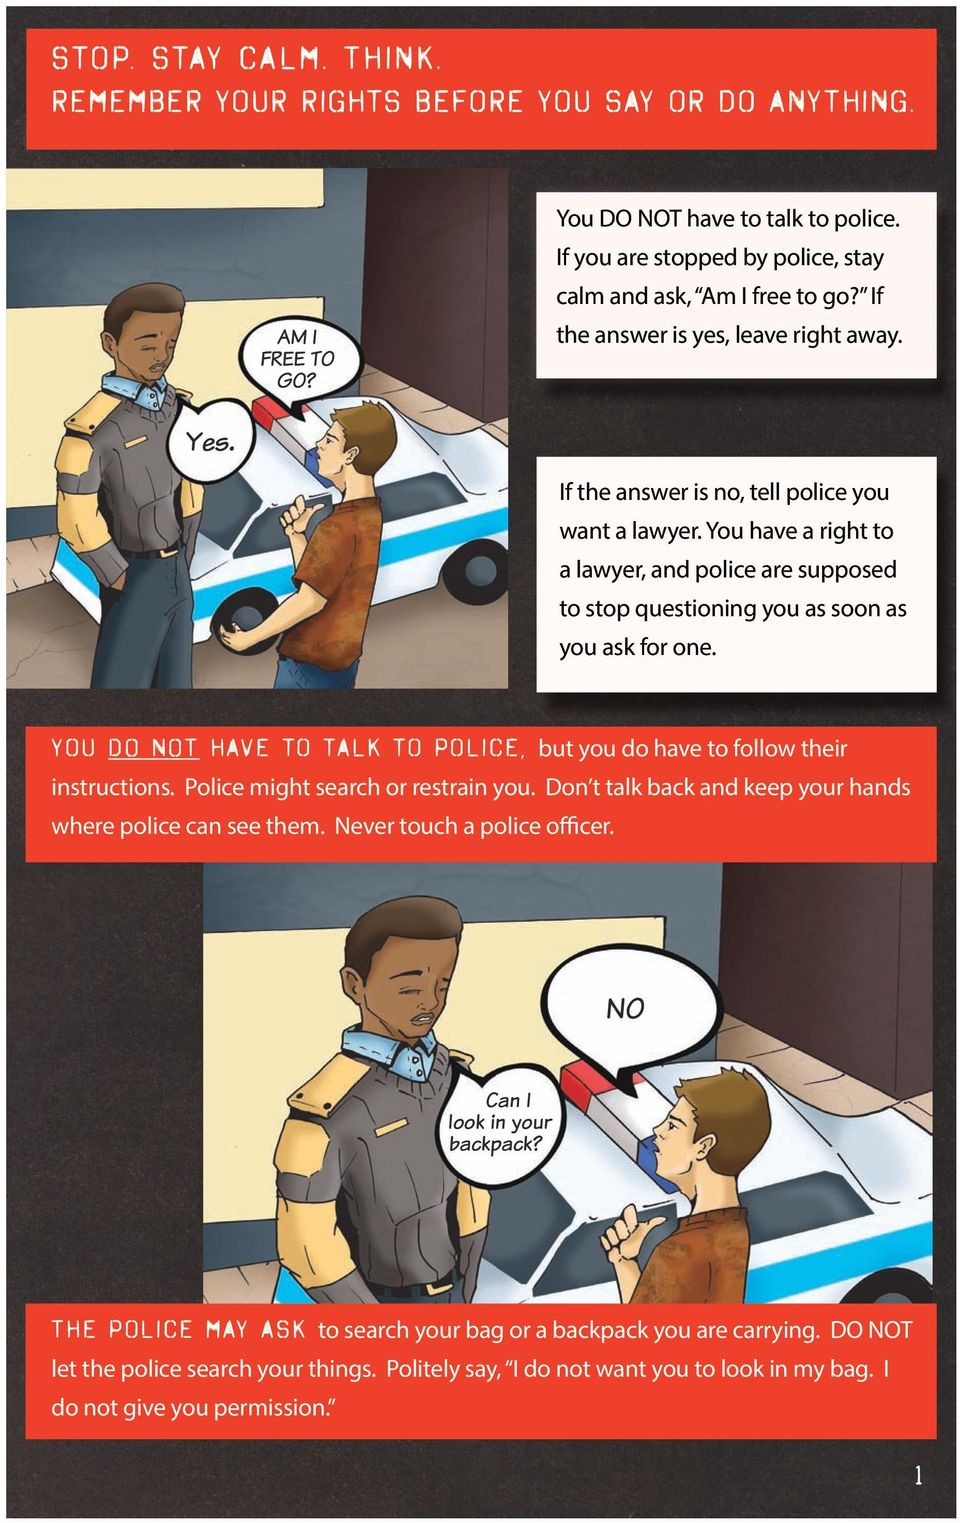 You have a right to a lawyer, and police are supposed to stop questioning you as soon as you ask for one. You DO NOT have to talk to police, but you do have to follow their instructions.